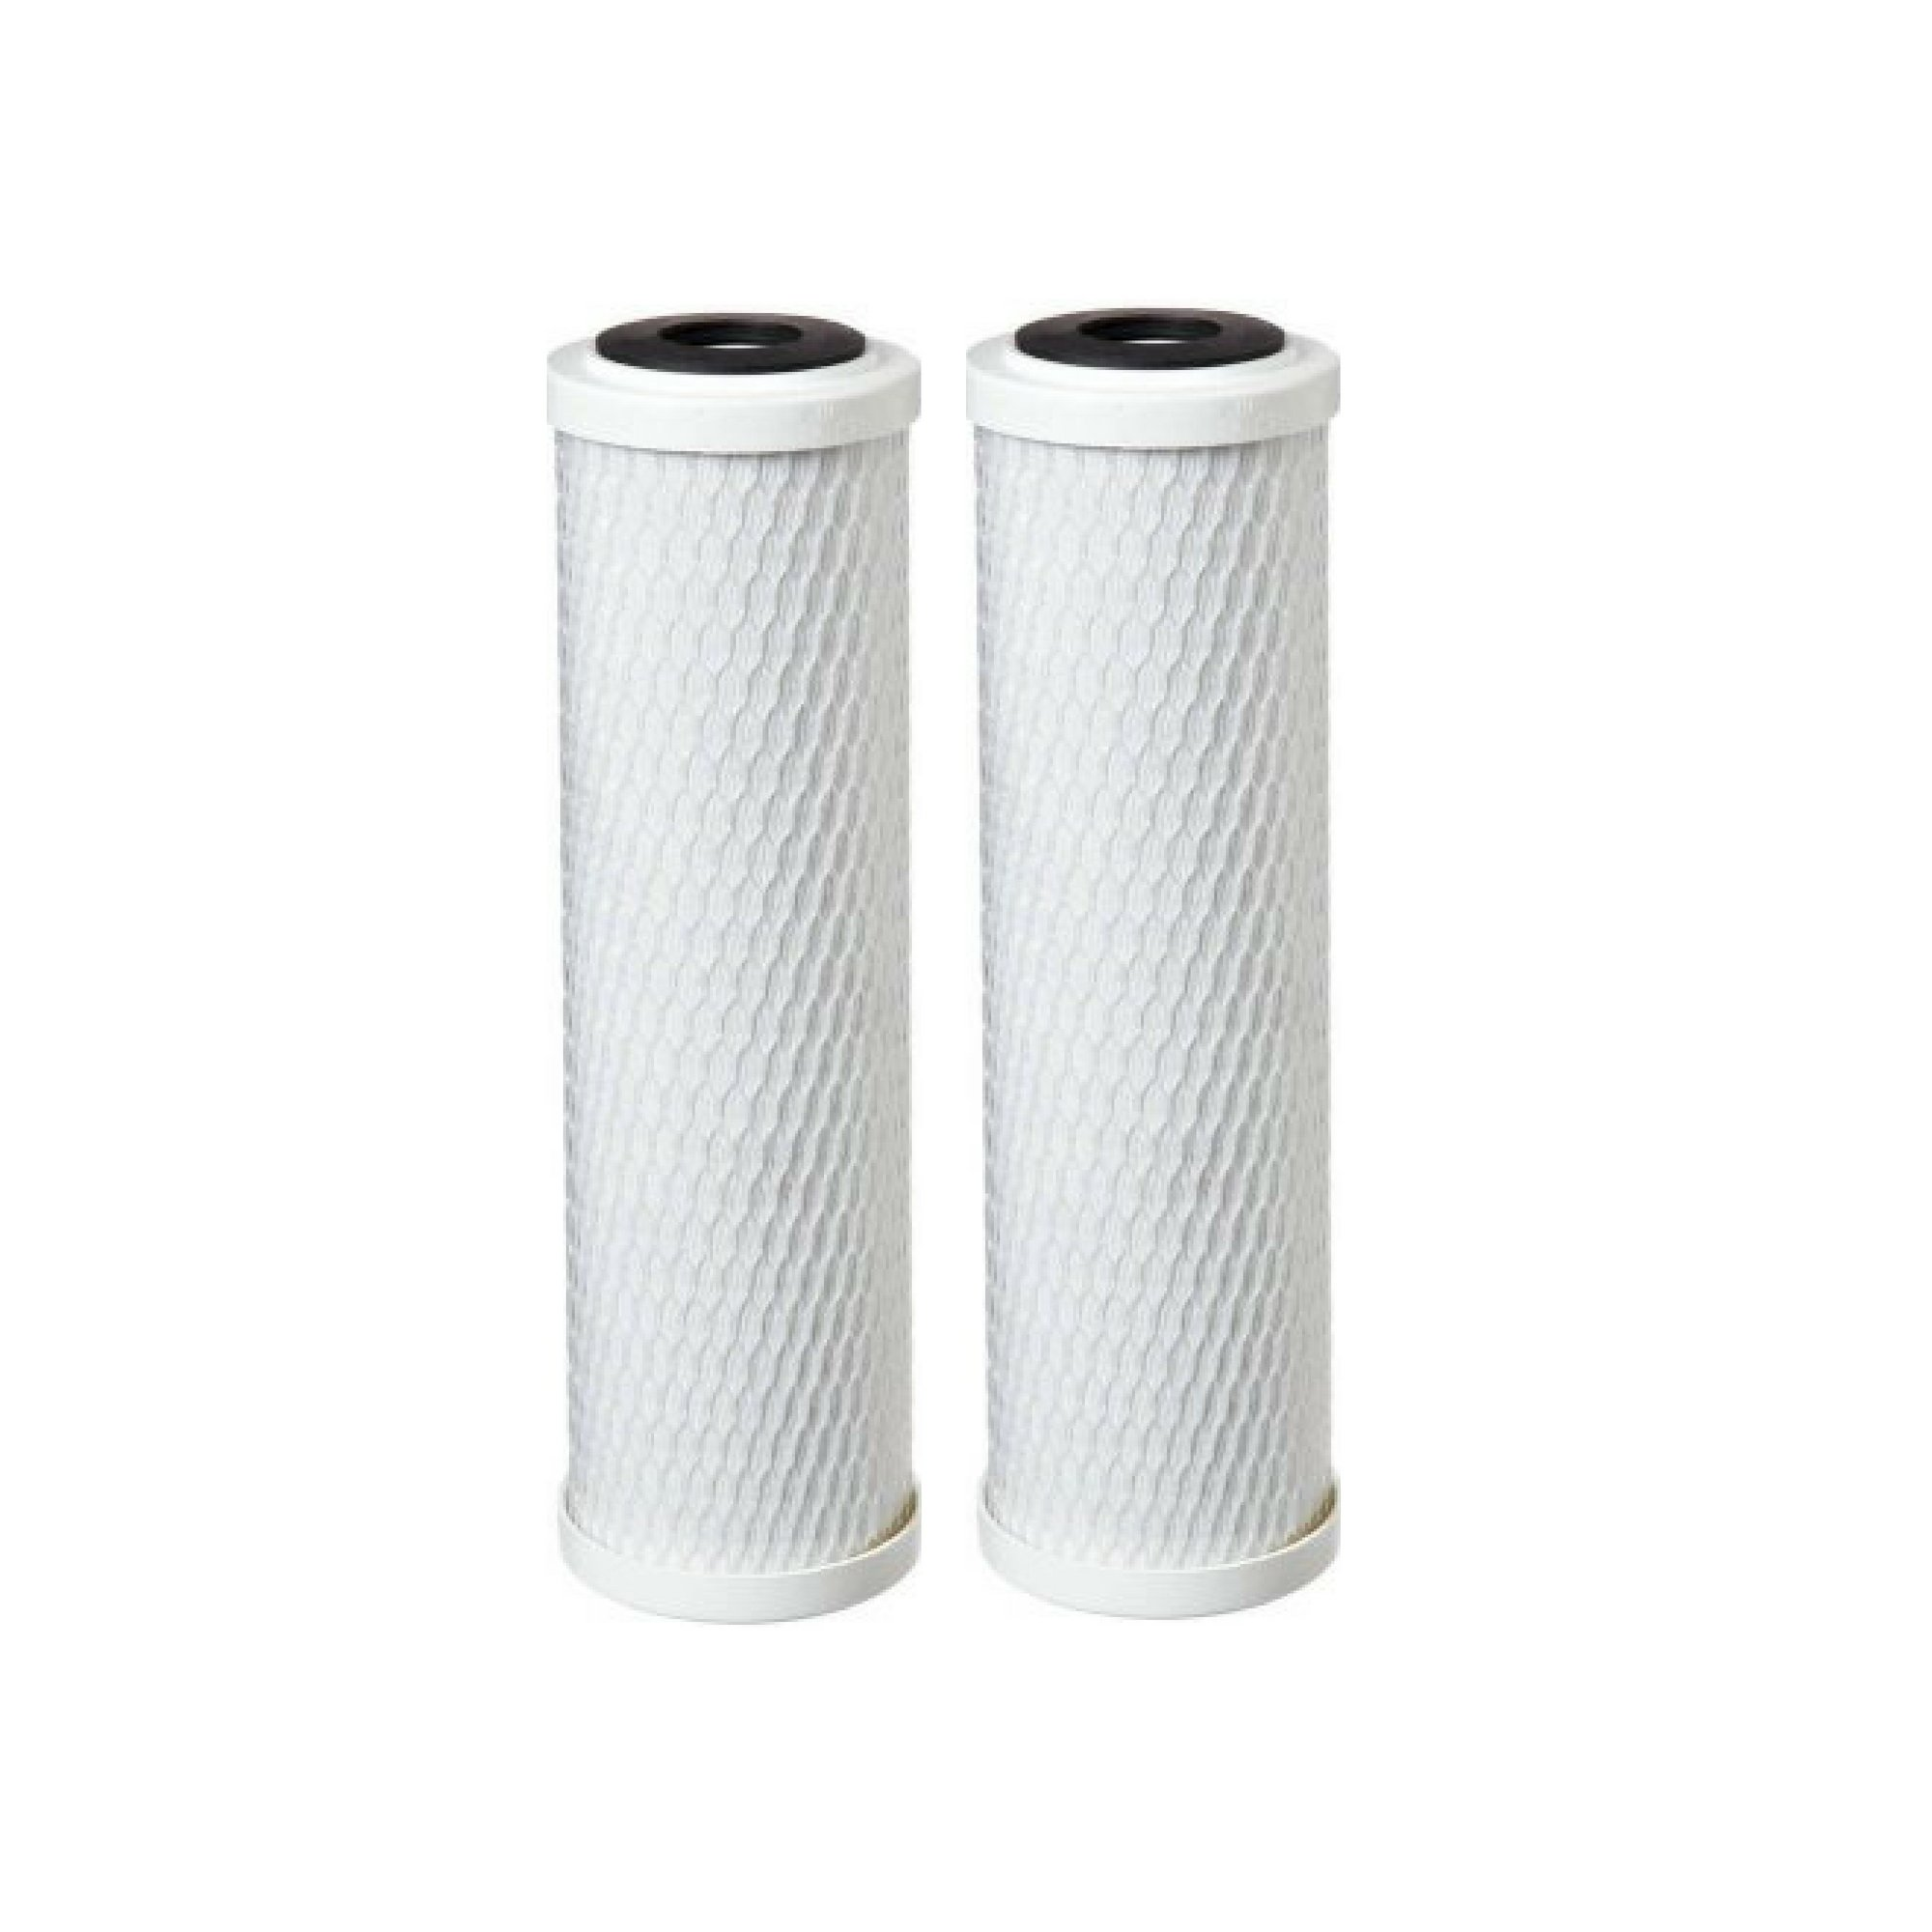 Pentek CBC-10 Cyst Reduction Water Filters (9-3/4'' x 2-7/8'') - 2